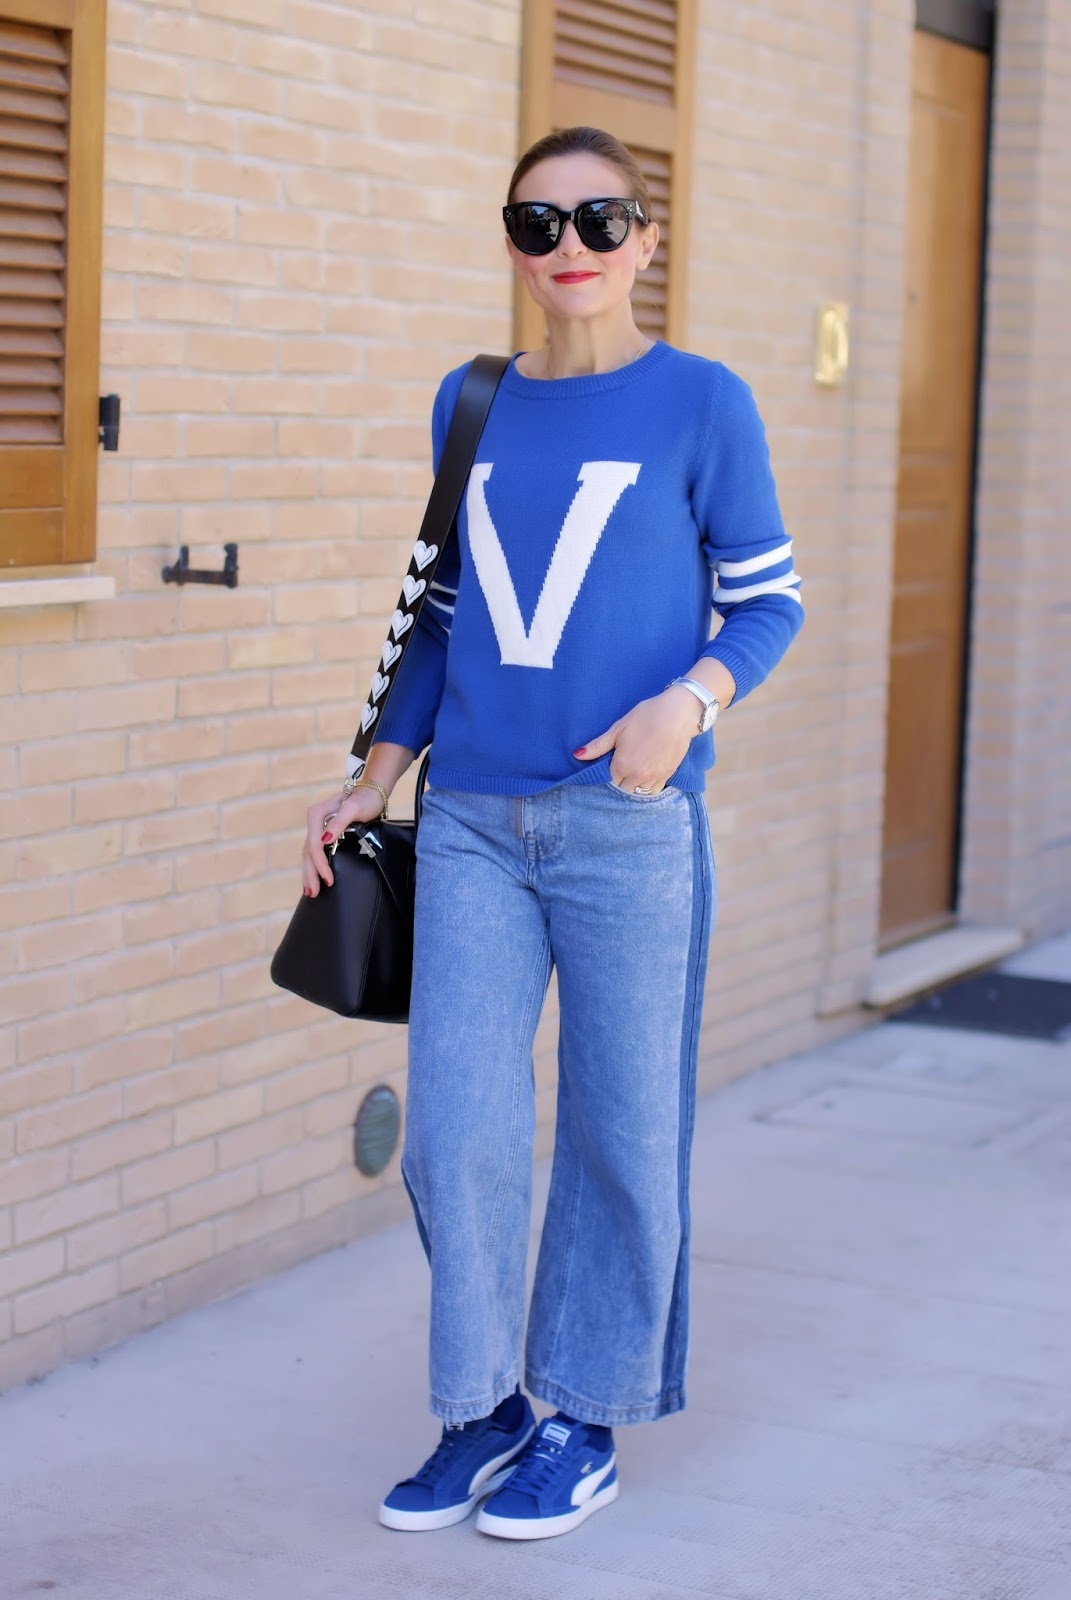 The initial letter sweater trend, varsity sweater royal blue outfit on Fashion and Cookies fashion blog, fashion blogger style